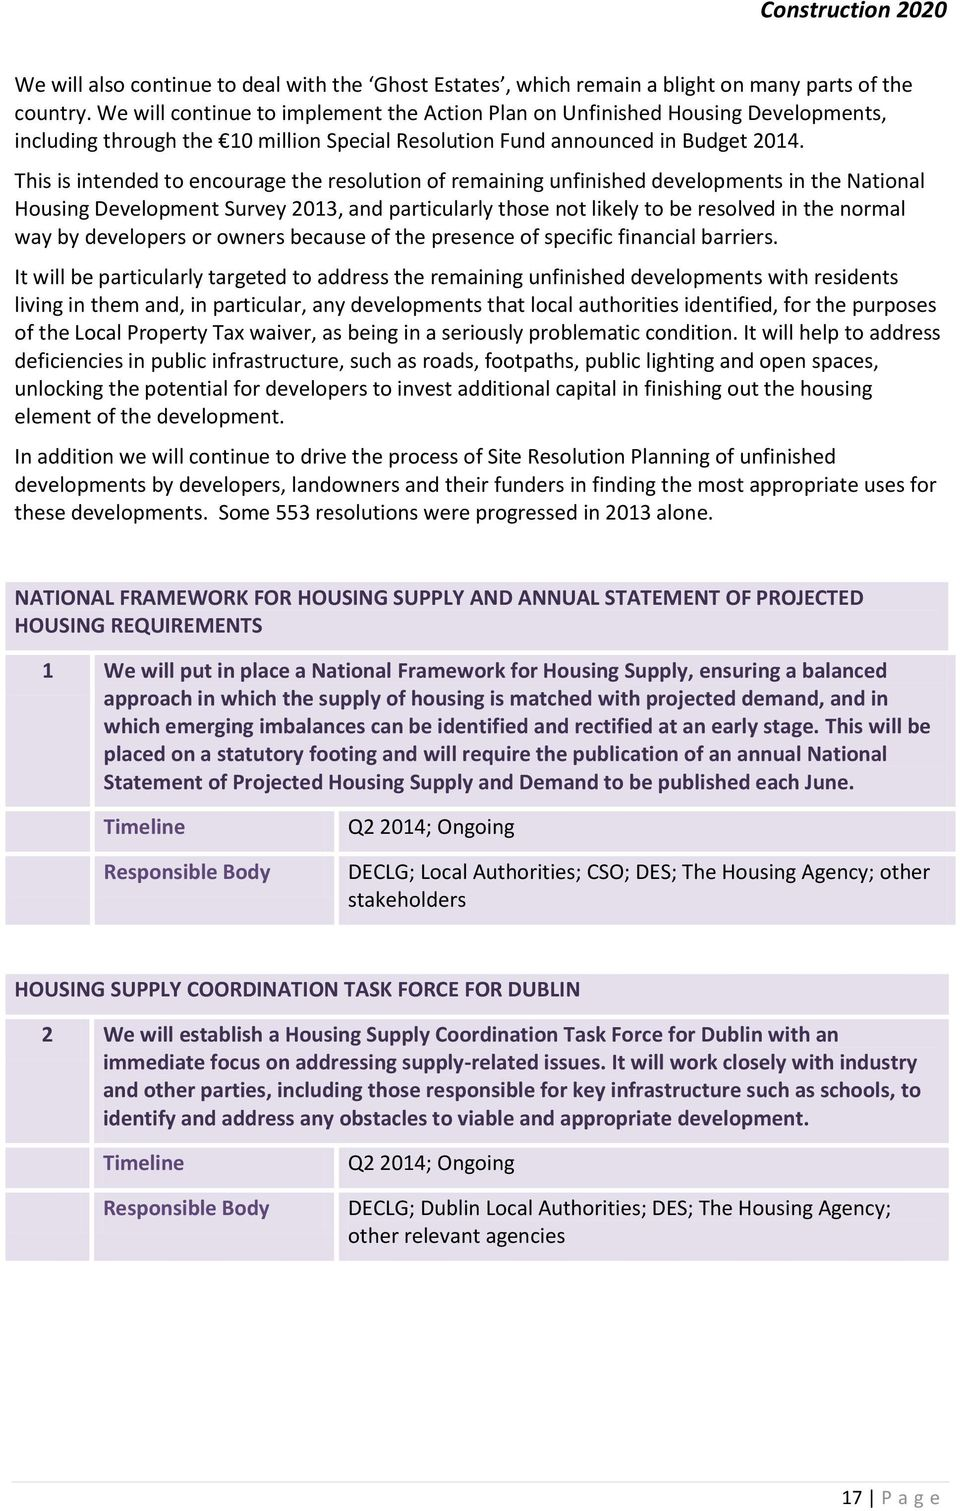 This is intended to encourage the resolution of remaining unfinished developments in the National Housing Development Survey 2013, and particularly those not likely to be resolved in the normal way